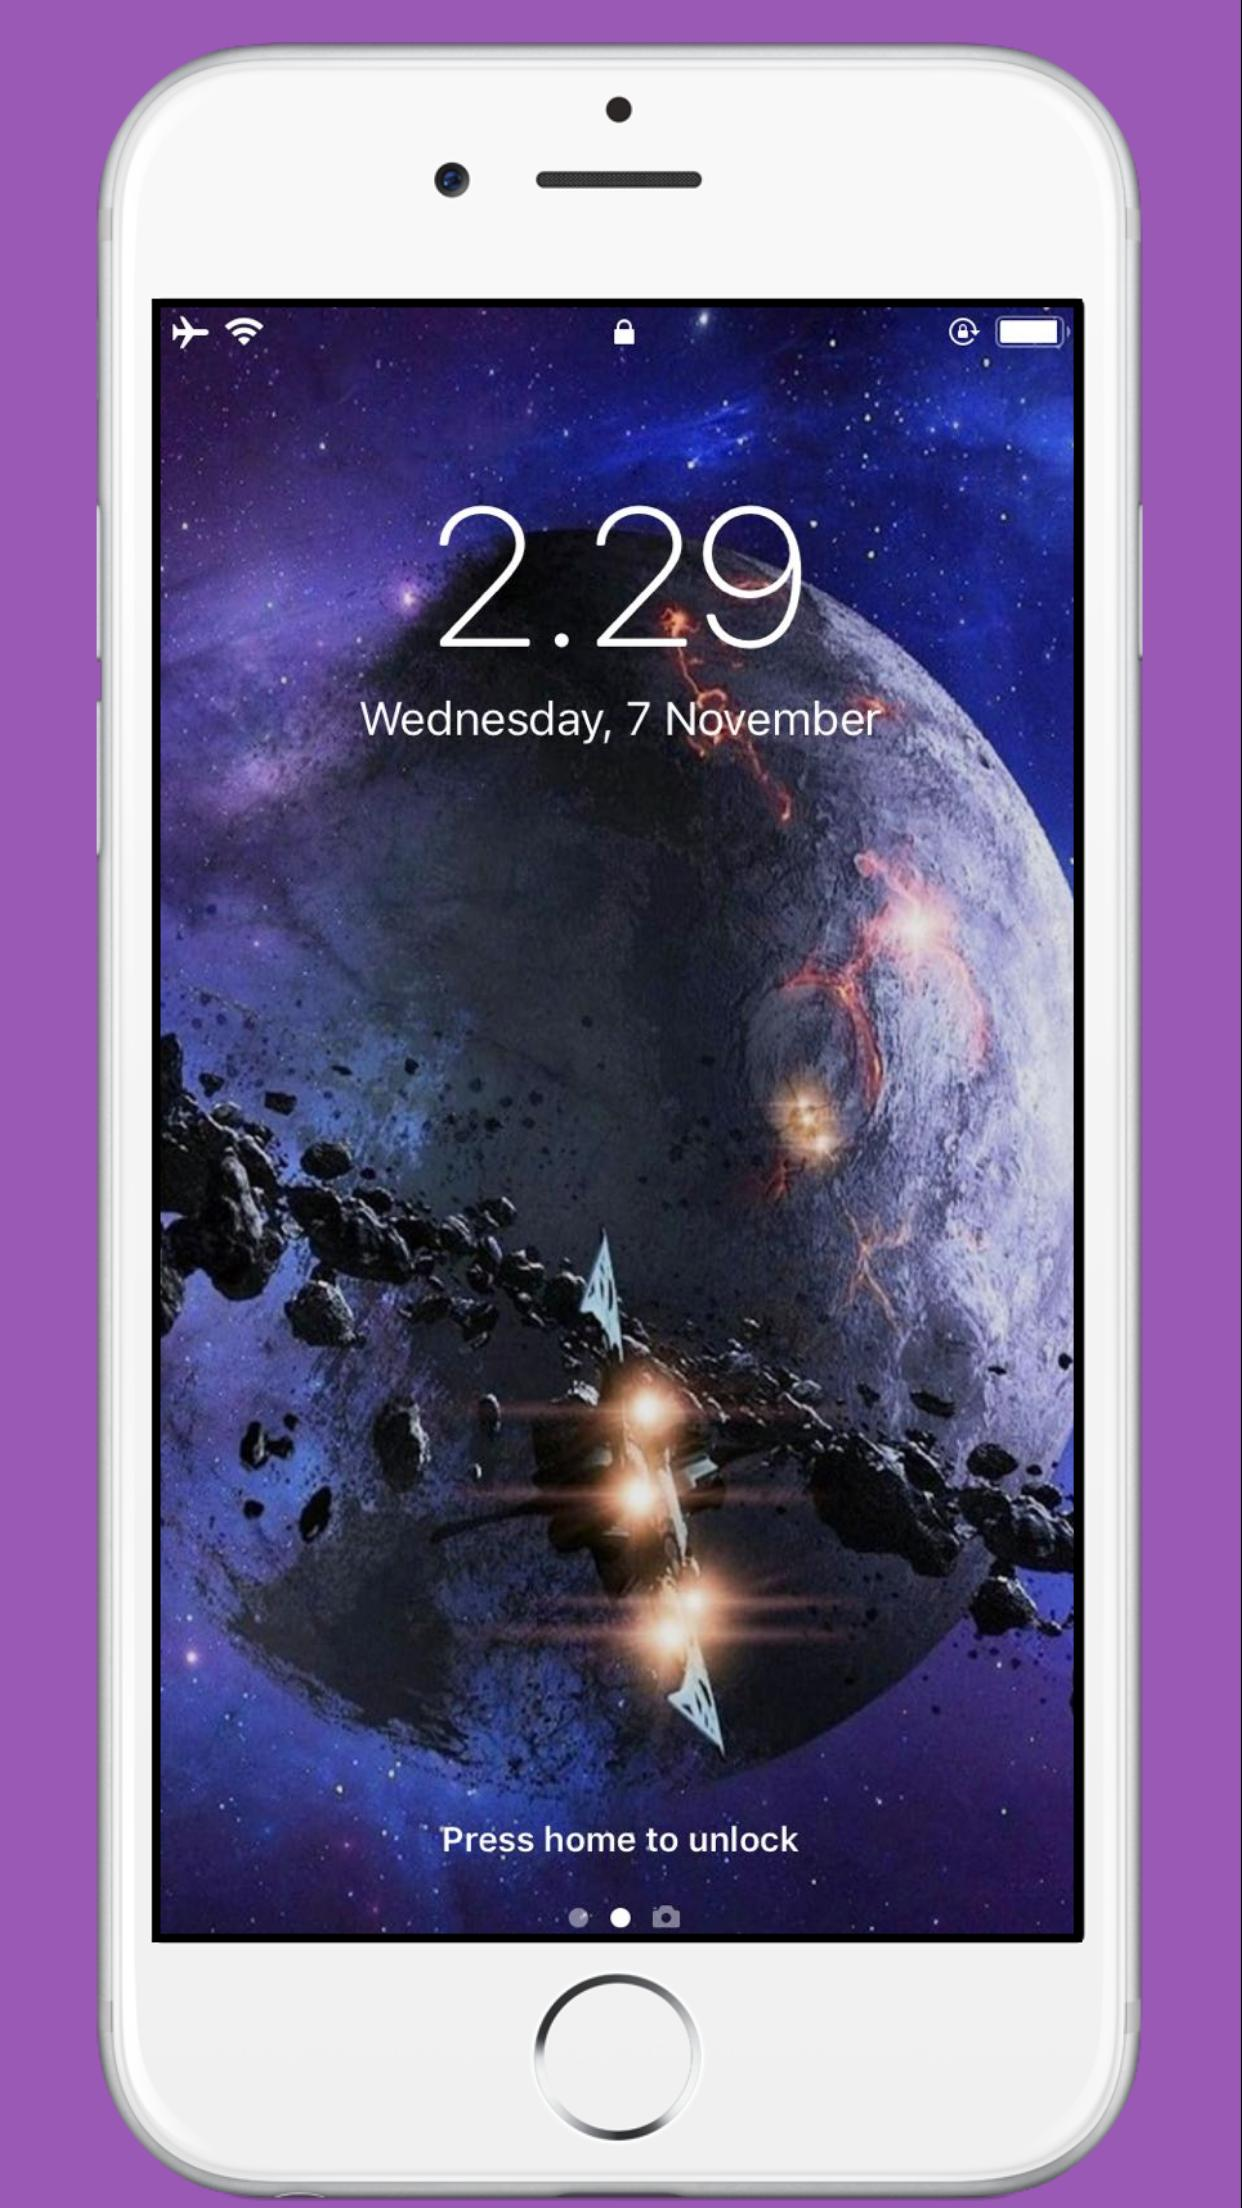 Space Phone Wallpaper For Android Apk Download